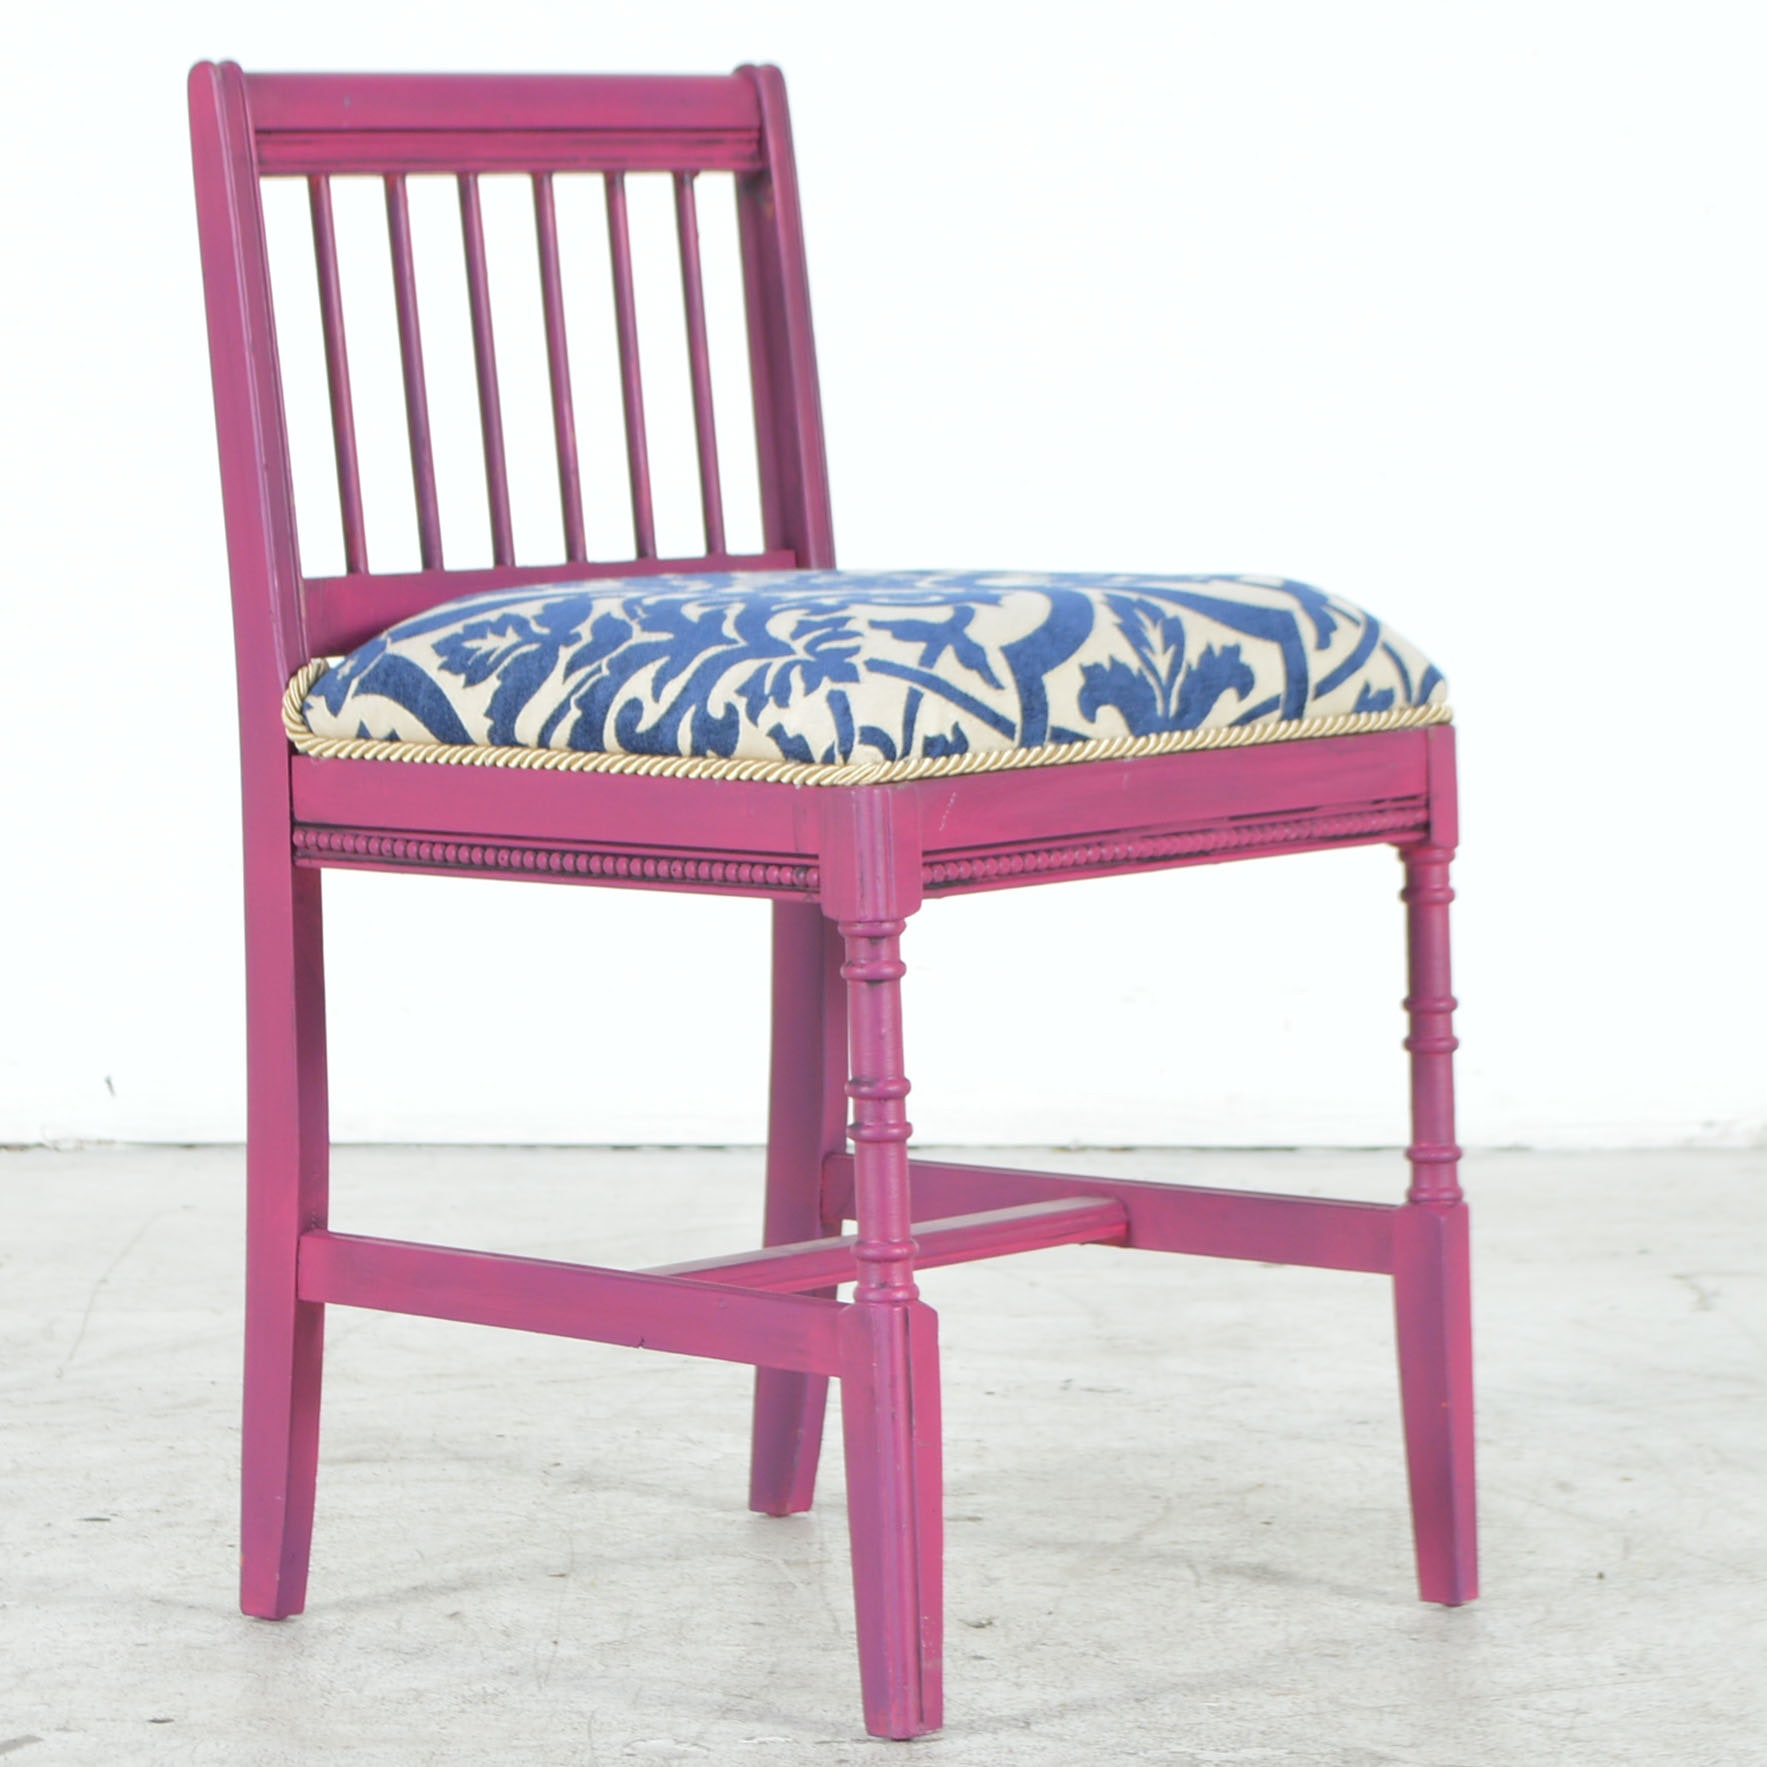 Fuschia Vanity Chair with Damask Upholstered Seat ...  sc 1 st  EBTH.com & Fuschia Vanity Chair with Damask Upholstered Seat : EBTH